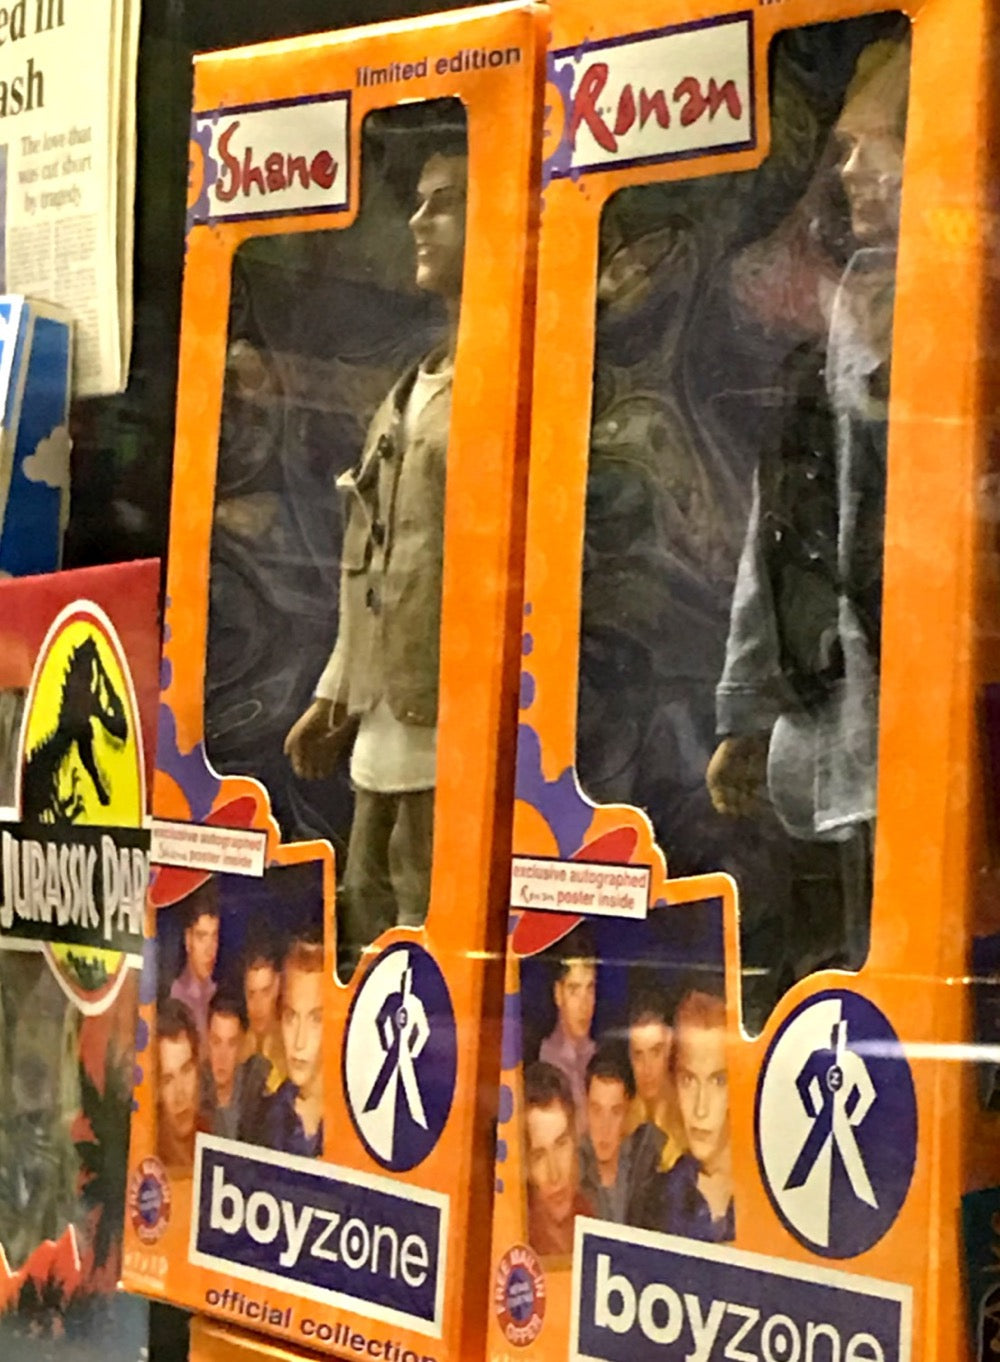 Boyzone dolls in orange packaging